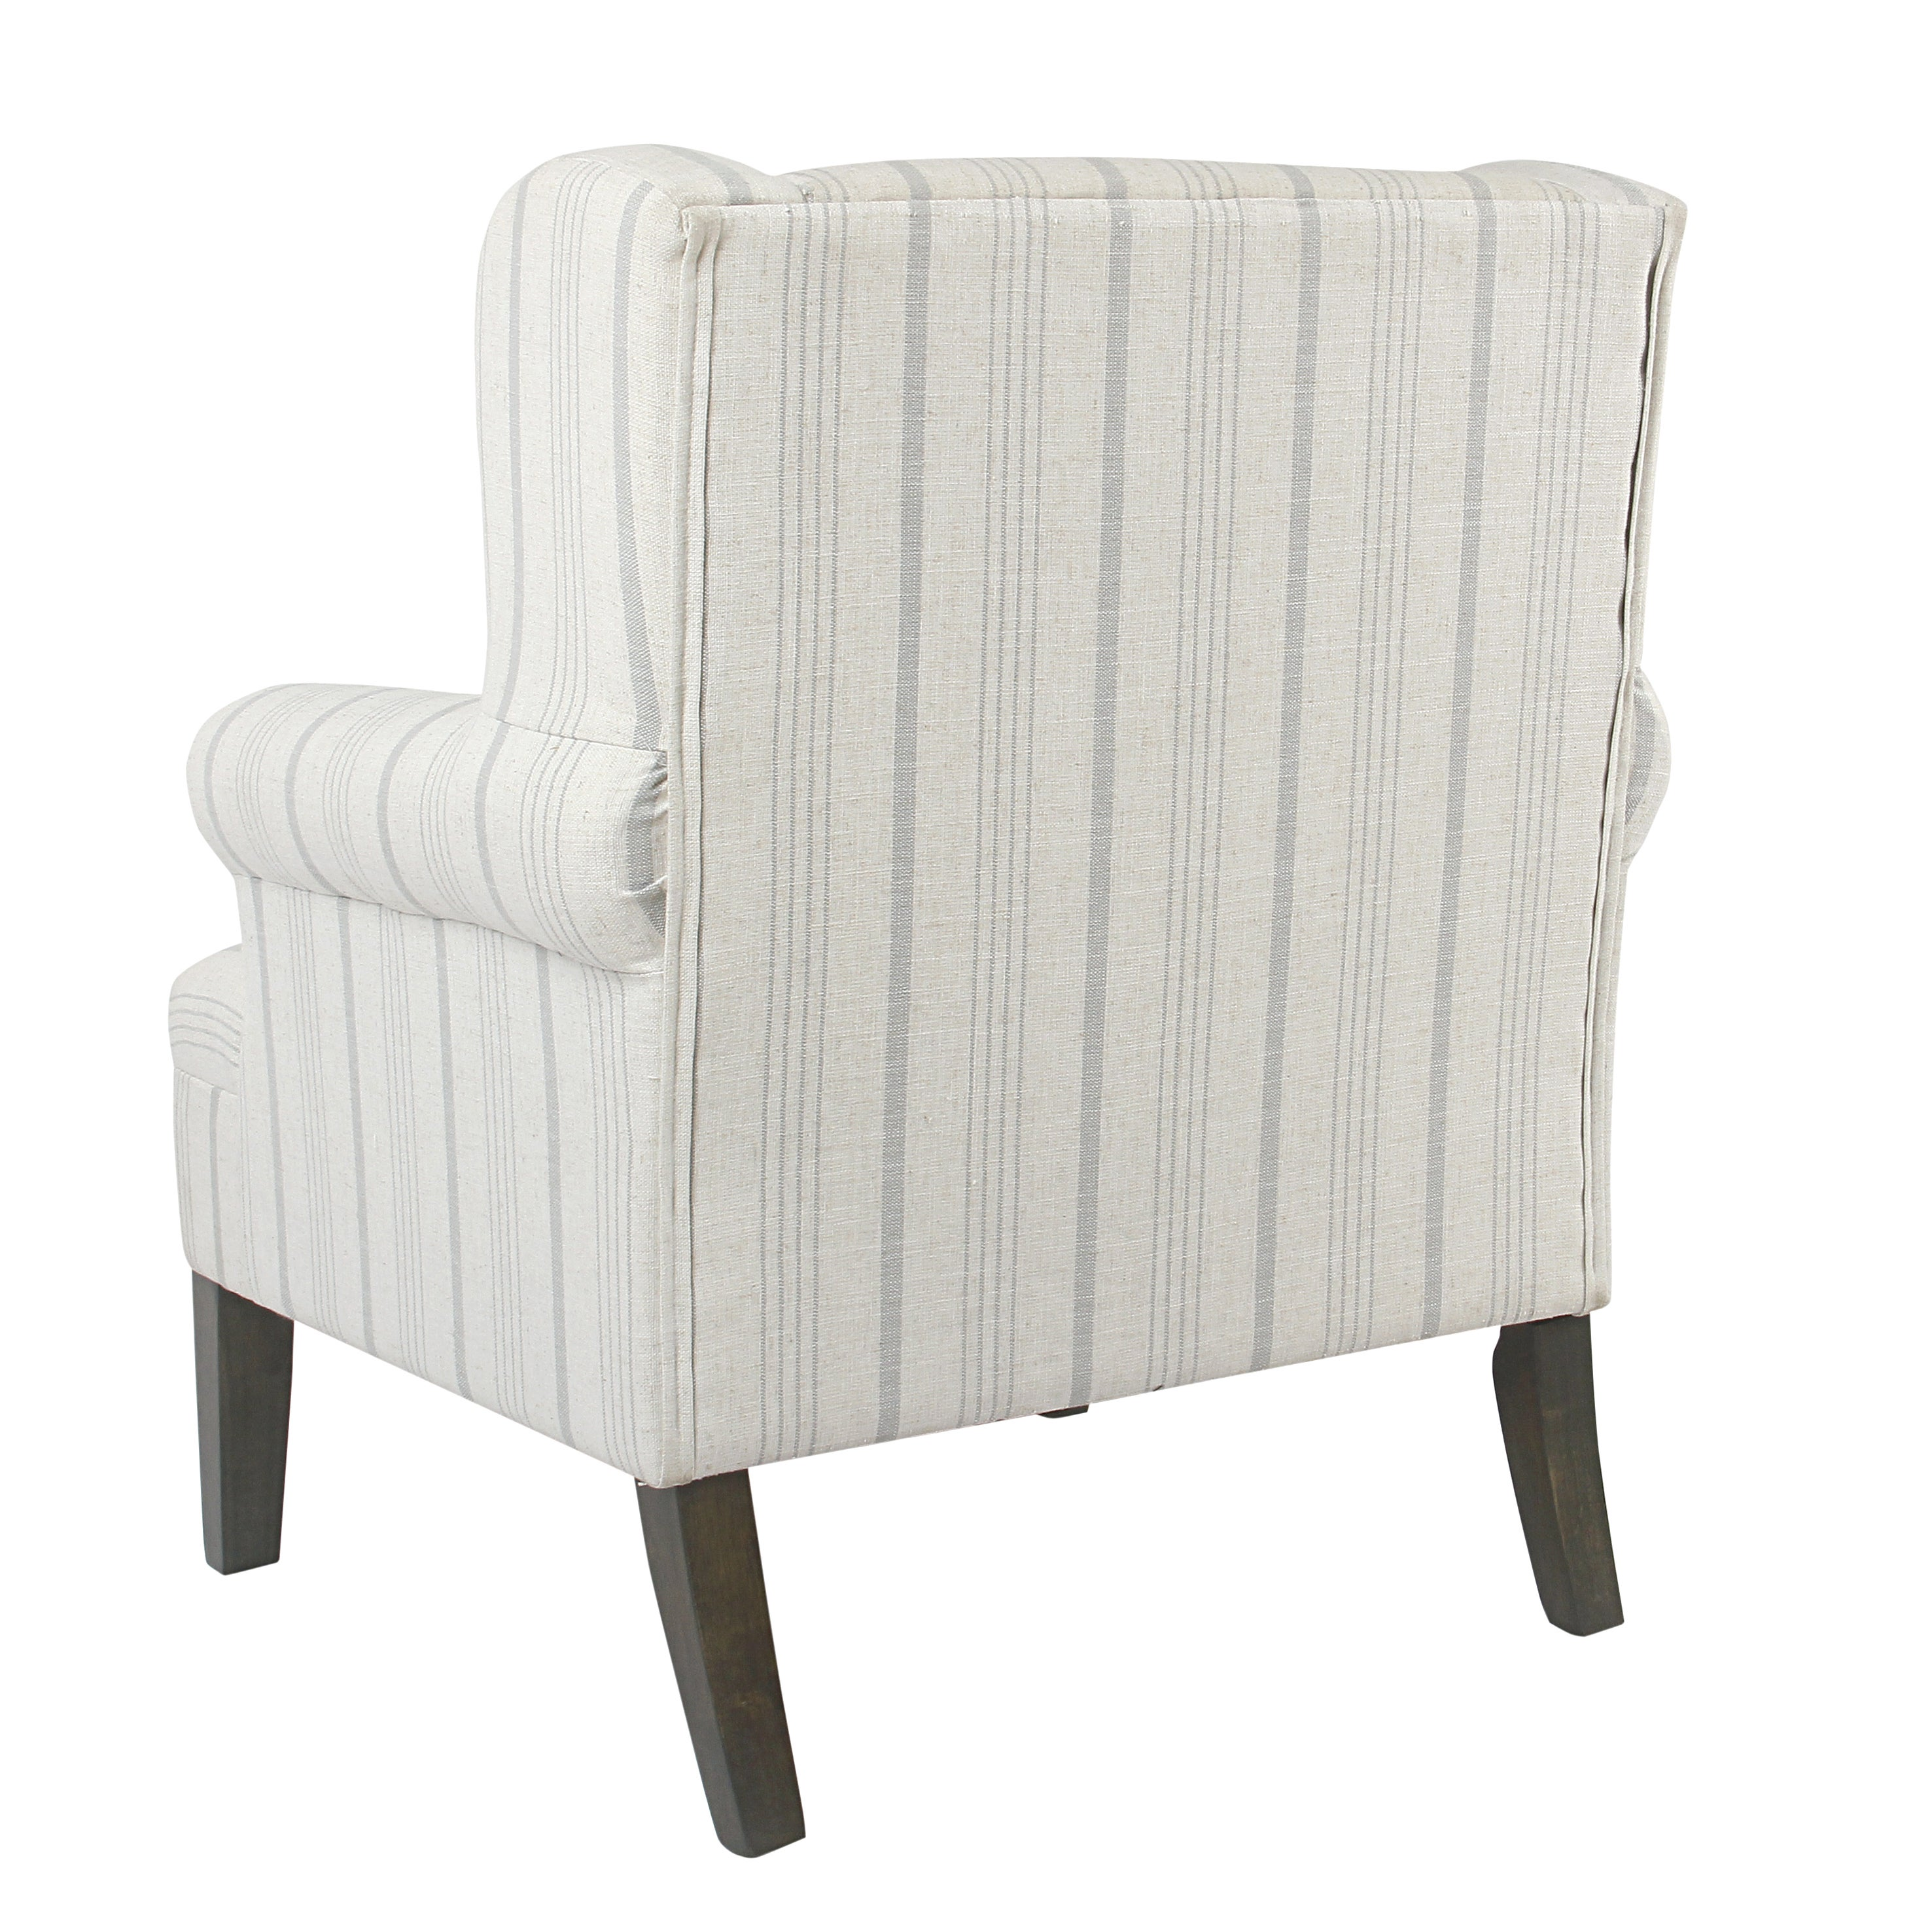 Superieur Shop HomePop Emerson Rolled Arm Accent Chair   Dove Grey Stripe   Free  Shipping Today   Overstock.com   15390809